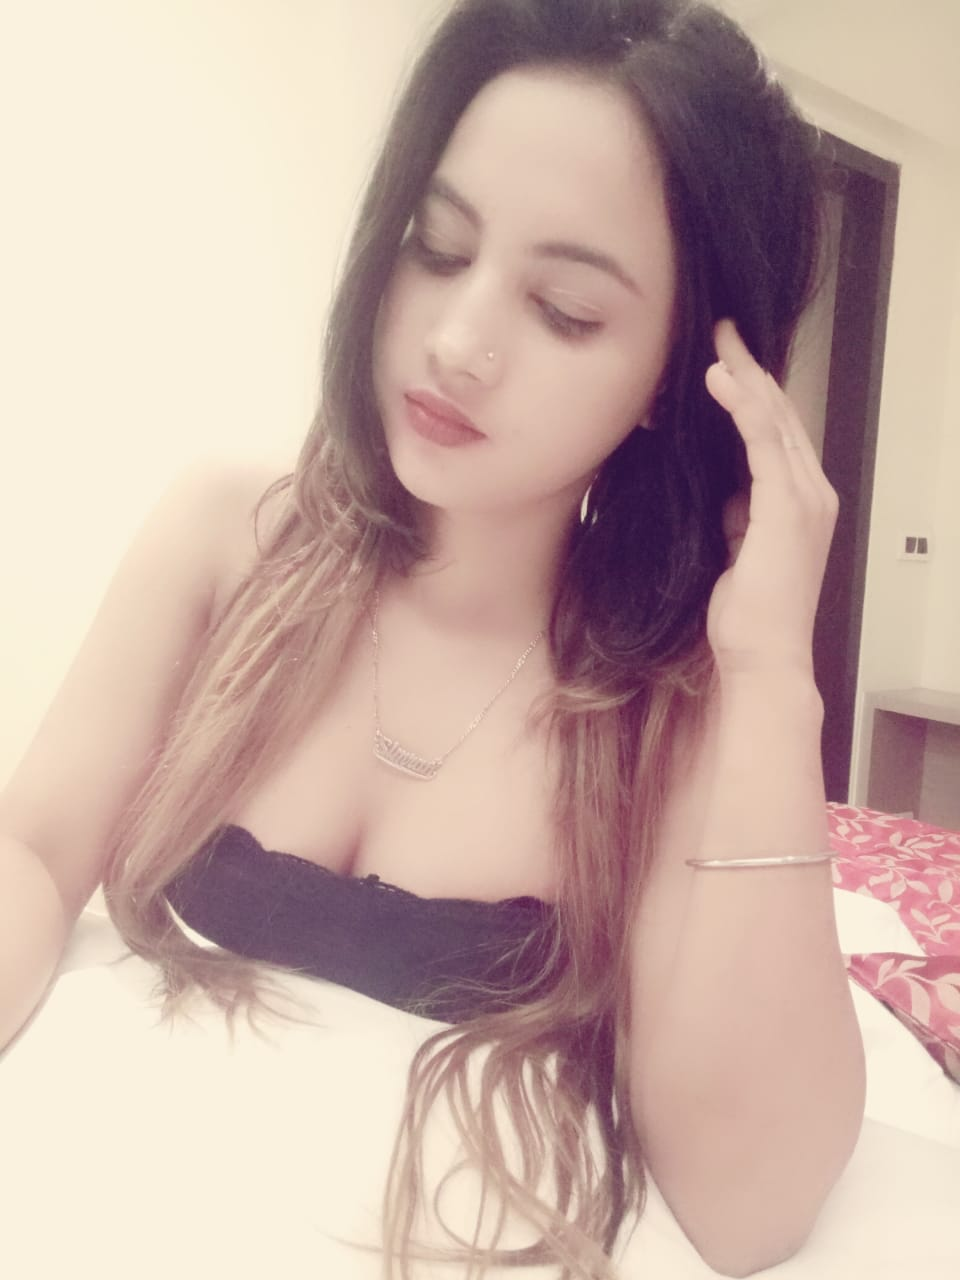 bhandup High Profile Escorts In